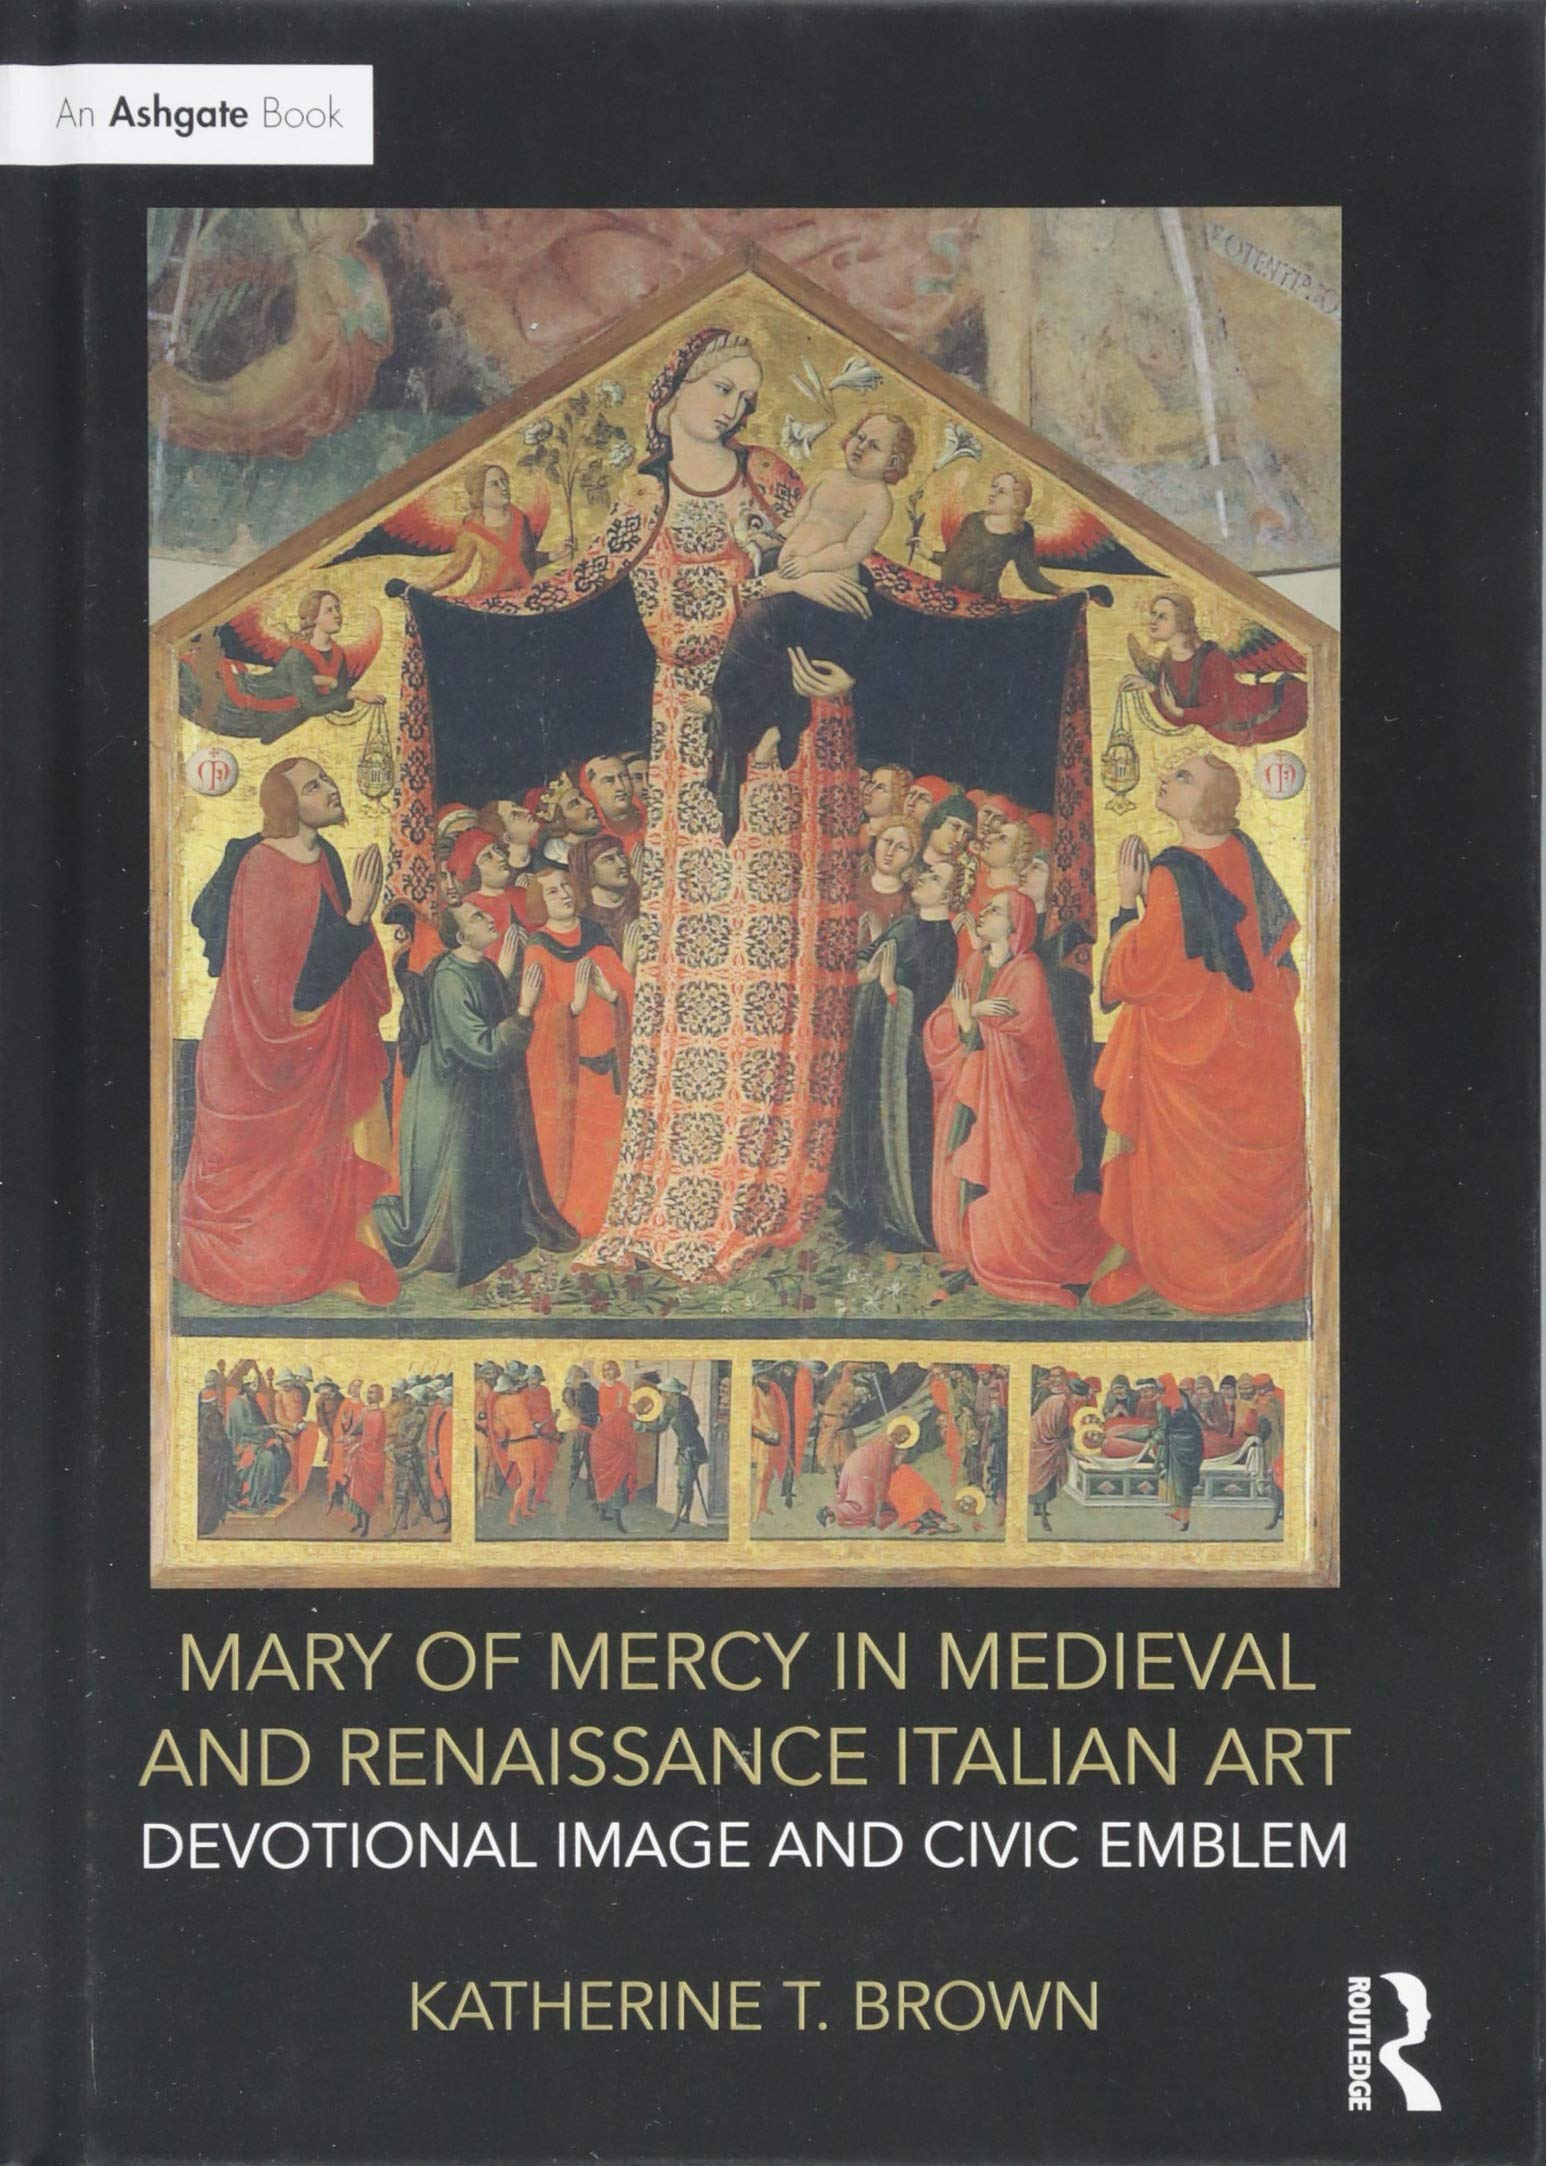 Mary of Mercy in Medieval and Renaissance Italian Art: Devotional image and civic emblem by Routledge